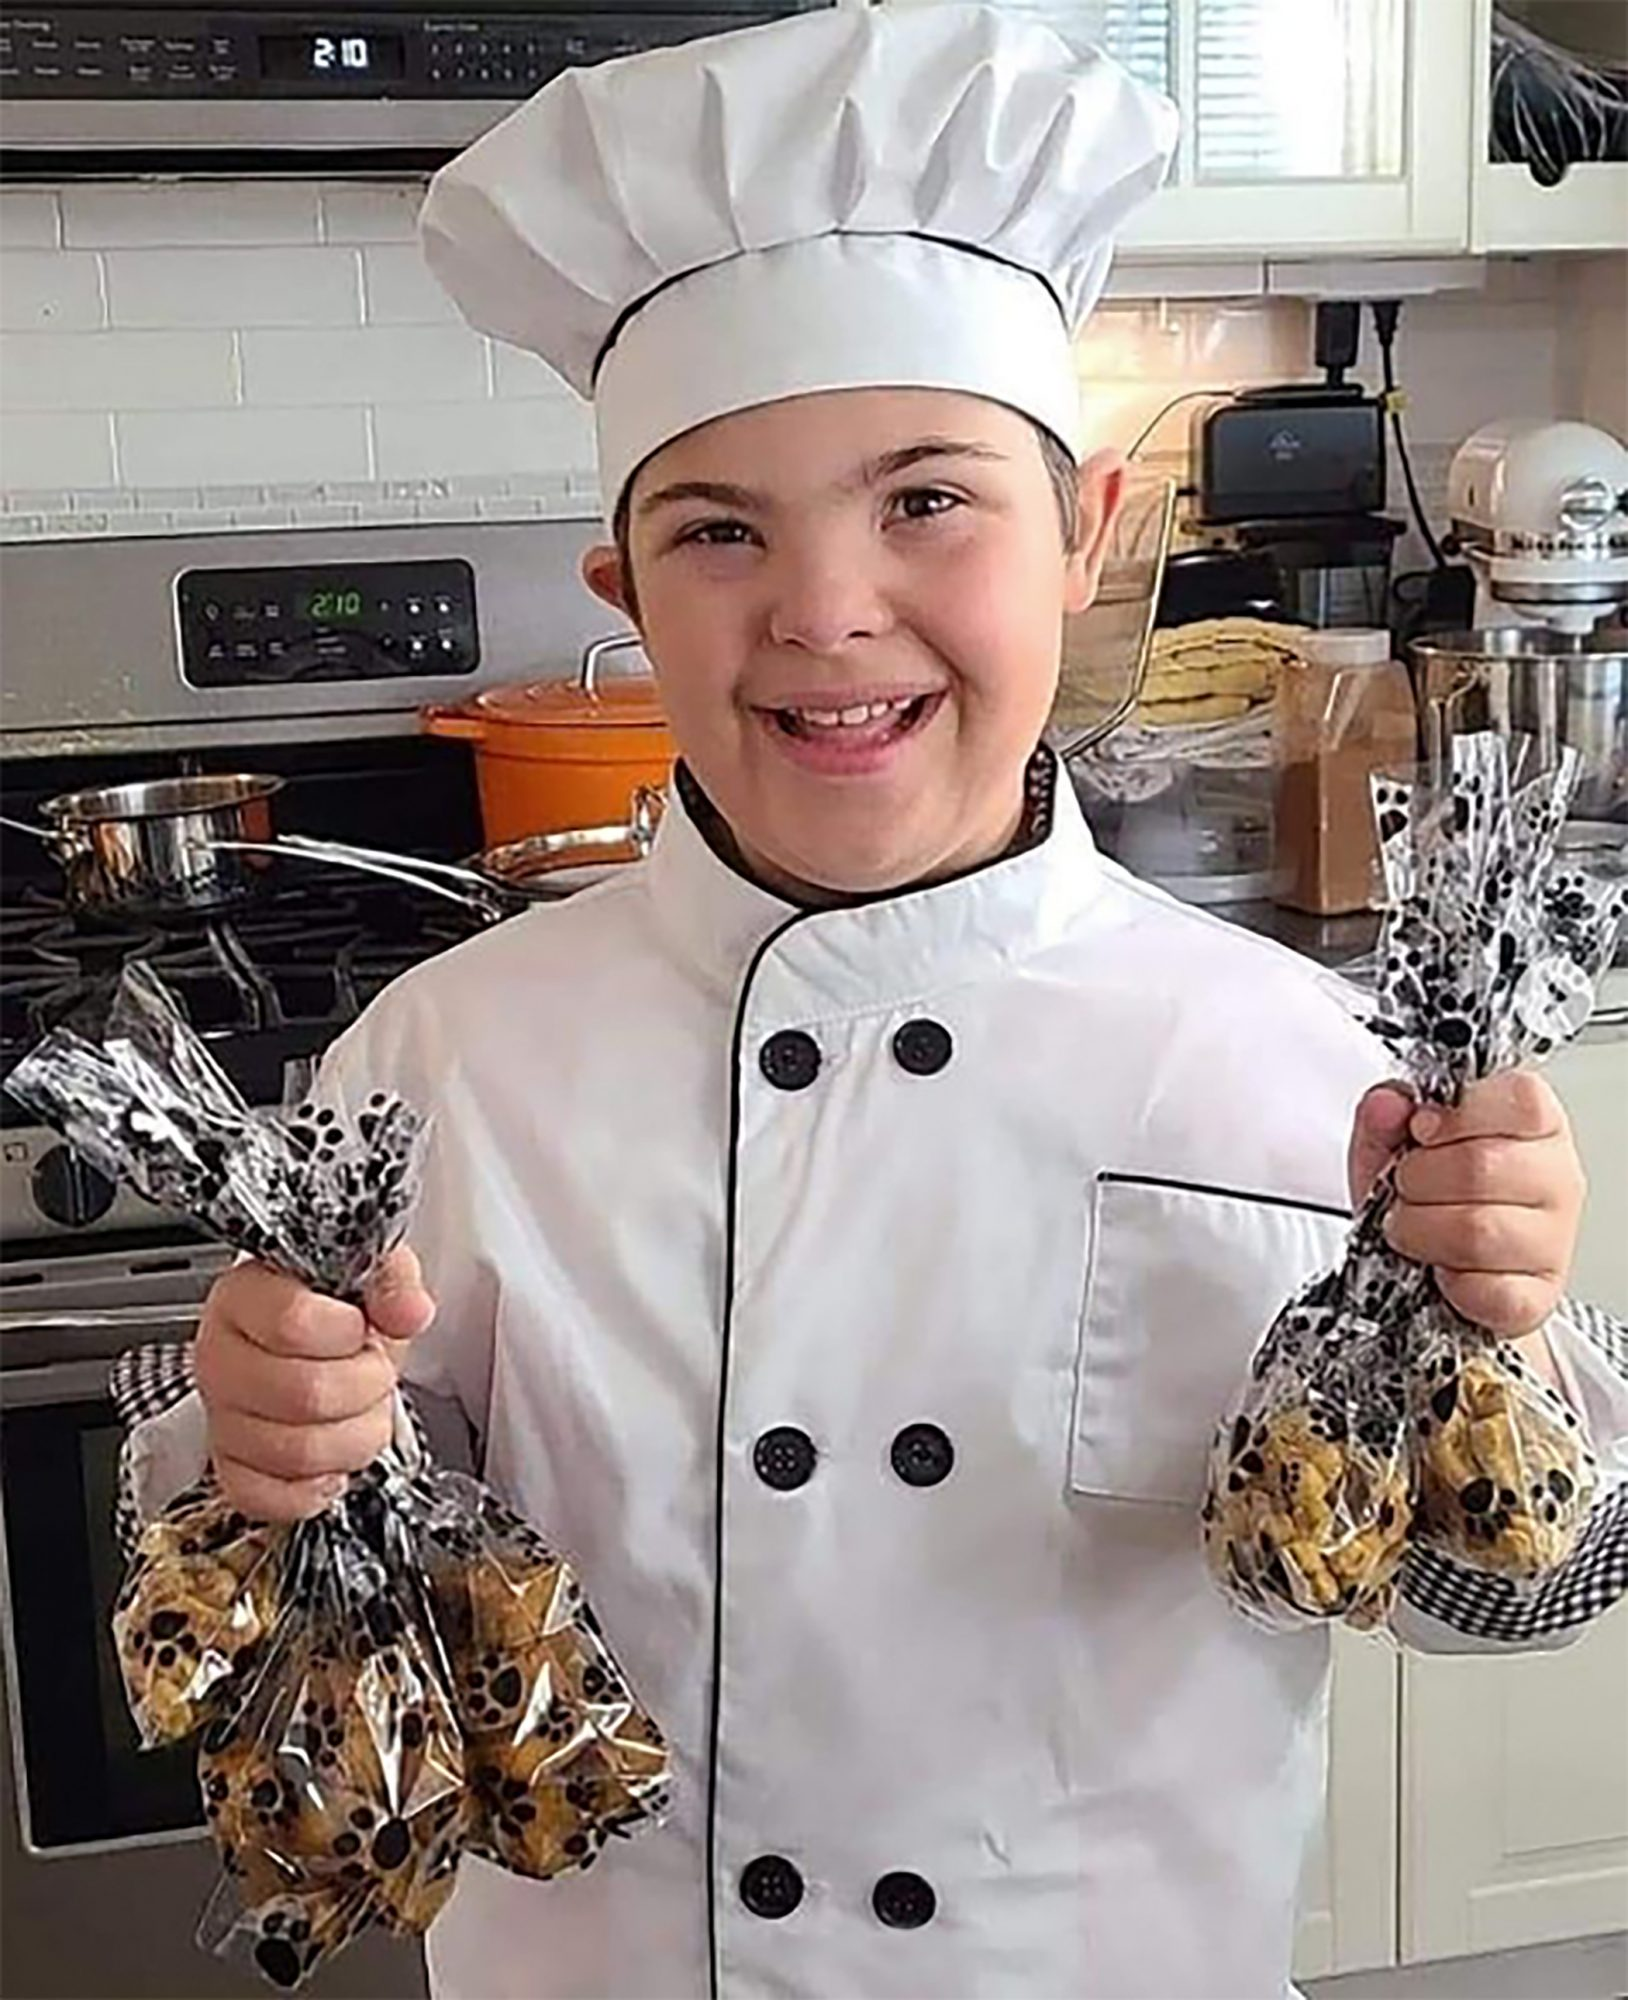 Connor wearing a chef's hat and holding bags of cookies